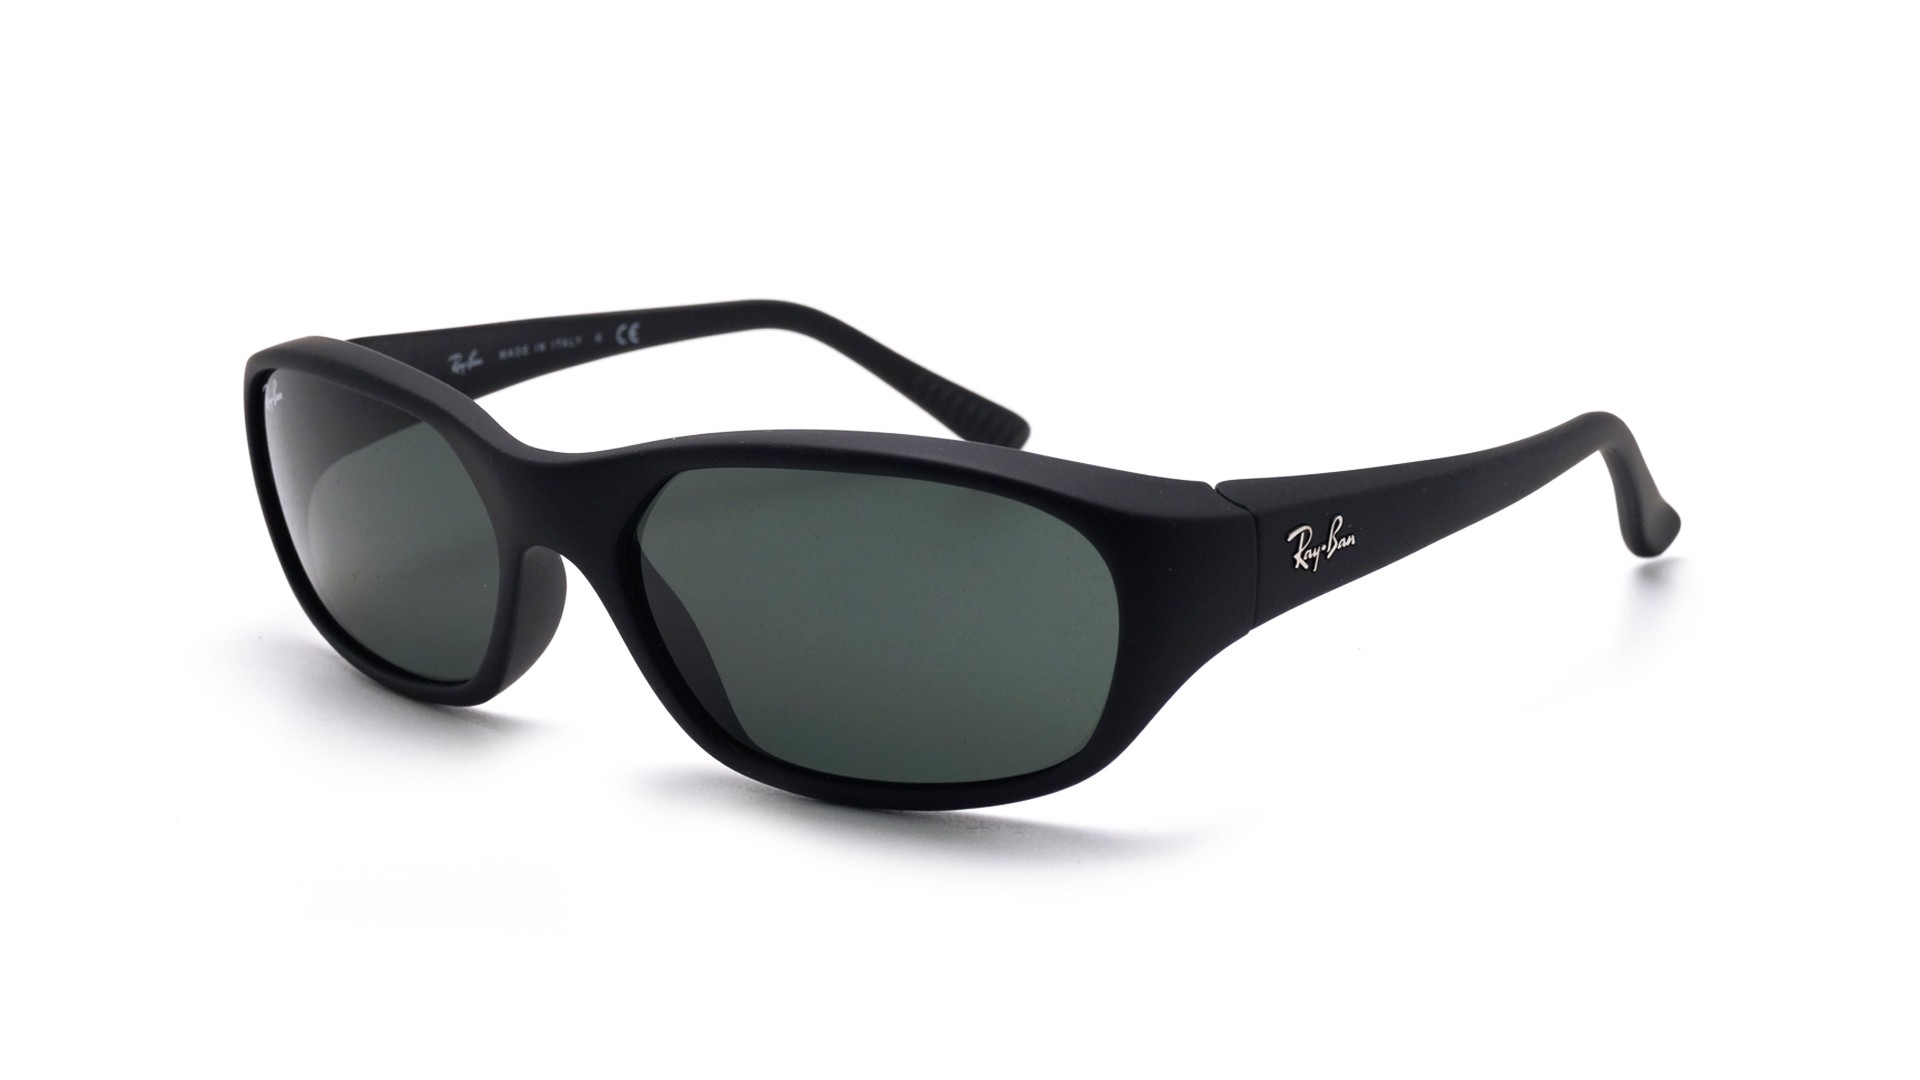 0deb92408e58a5 Sunglasses Ray-Ban Daddy-o II Black Matte G-15 RB2016 W2578 59-170 Medium